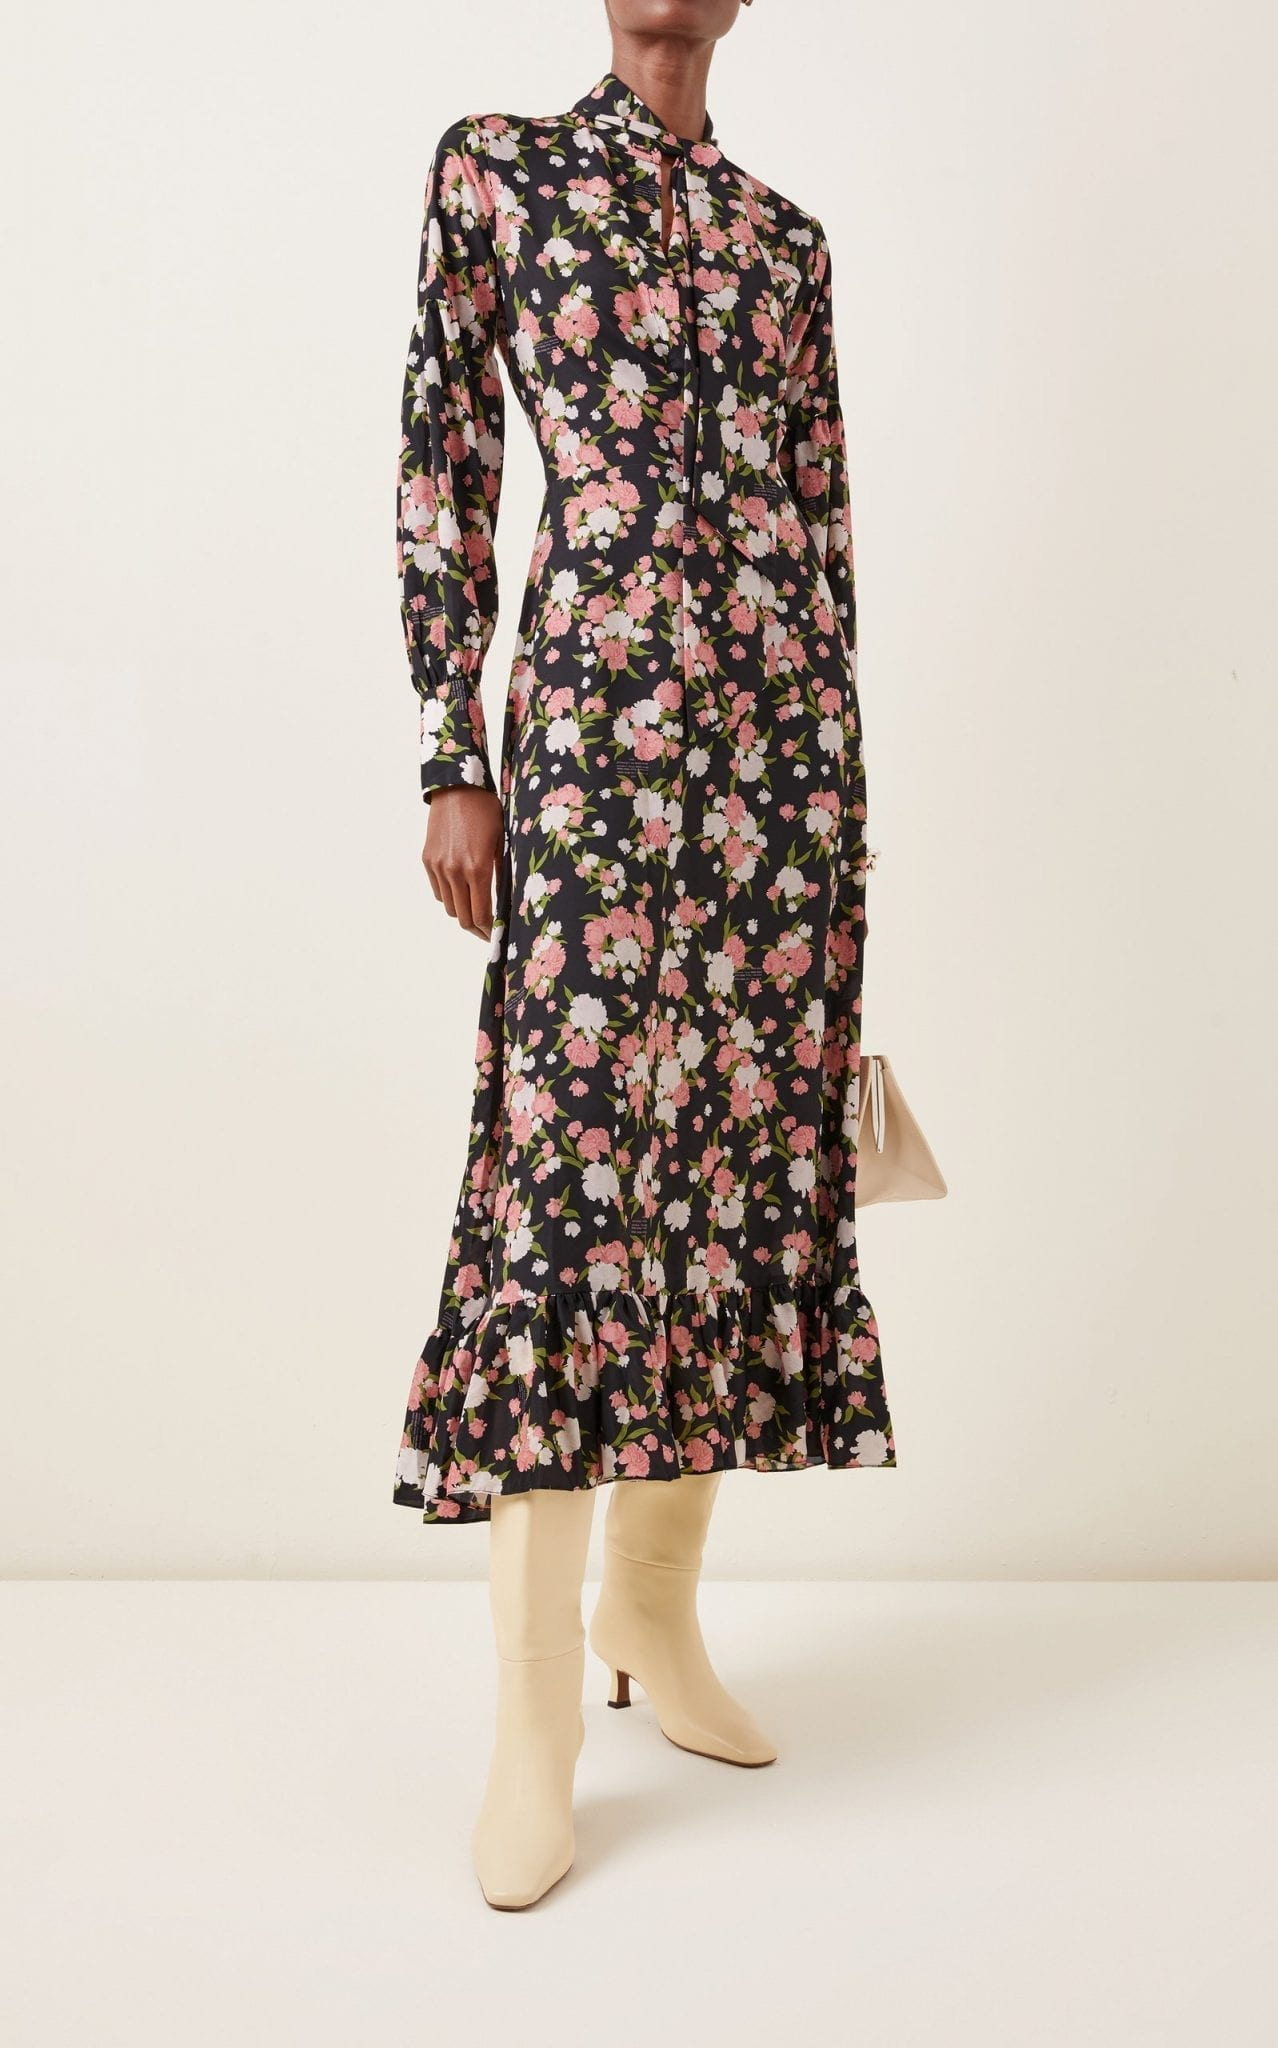 ROKH Ruffled Floral Crepe Tie-Neck Midi Dress